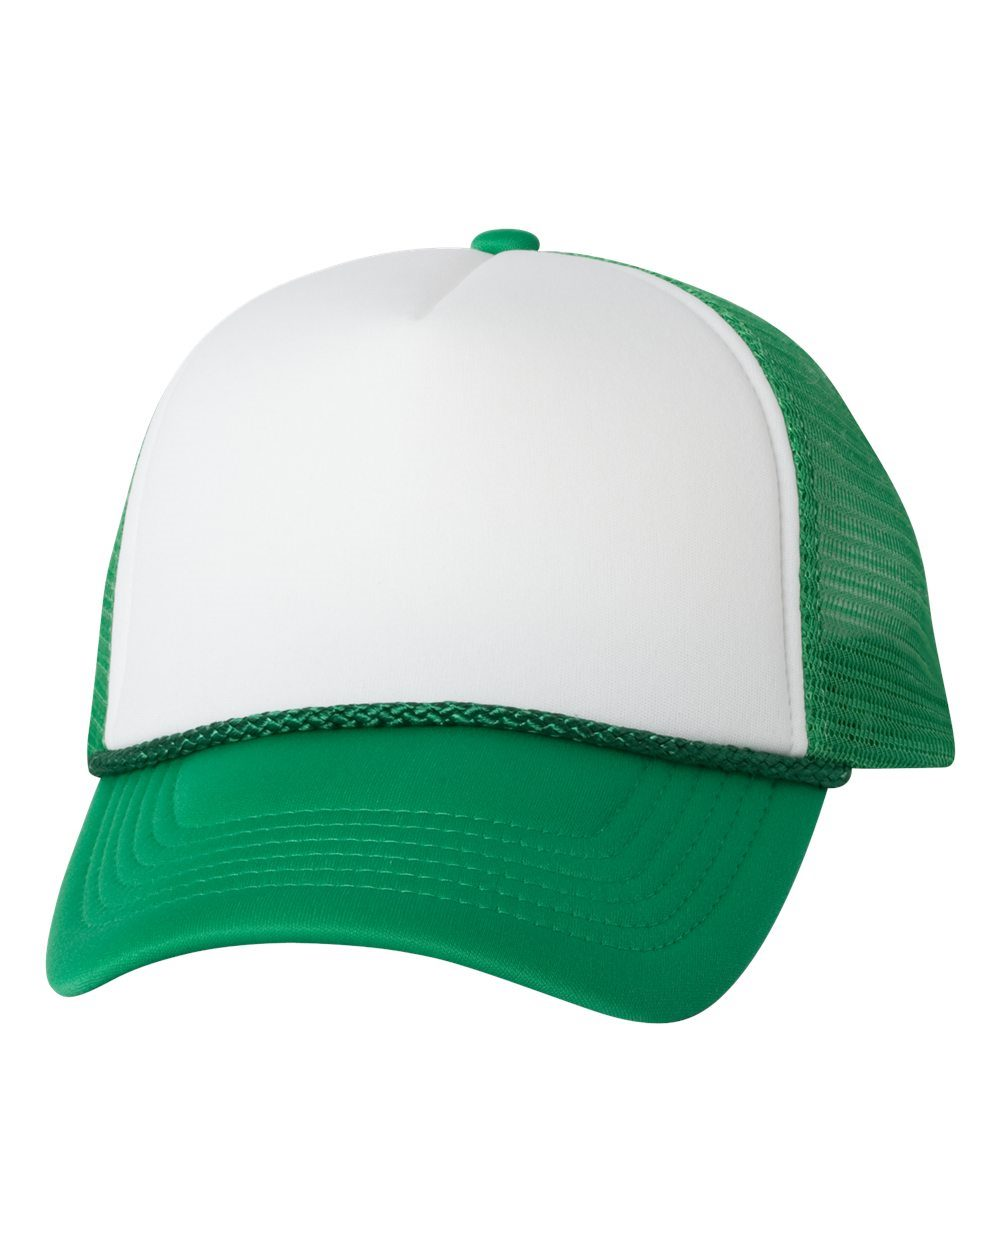 Valucap VC700 - Foam Mesh-Back Trucker Cap